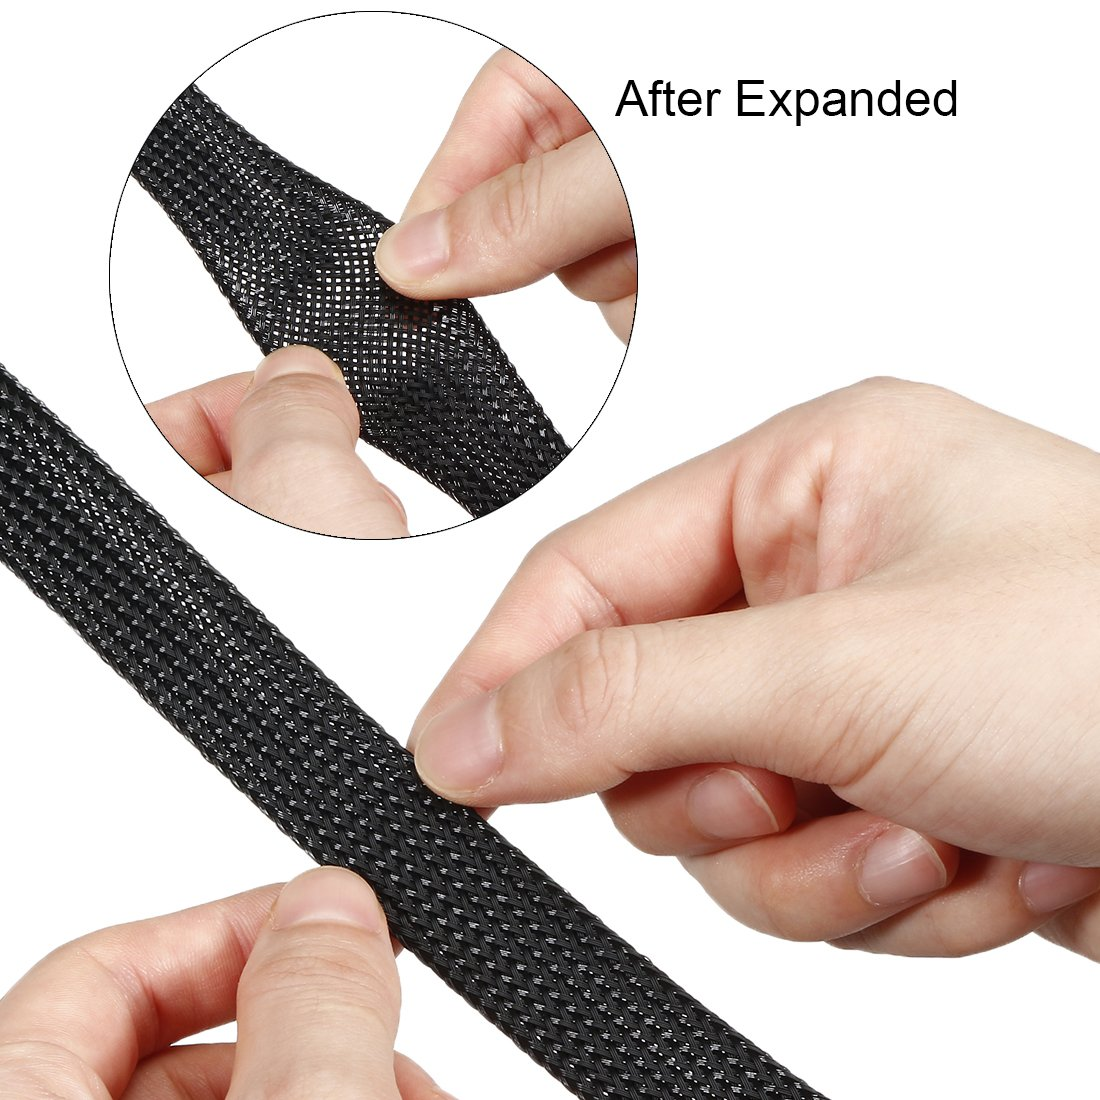 sourcing map 3 Meters PET Expandable Braided Sleeving 9.84ft 6mm Dia Cable Management Sleeve Cord Organizer Black